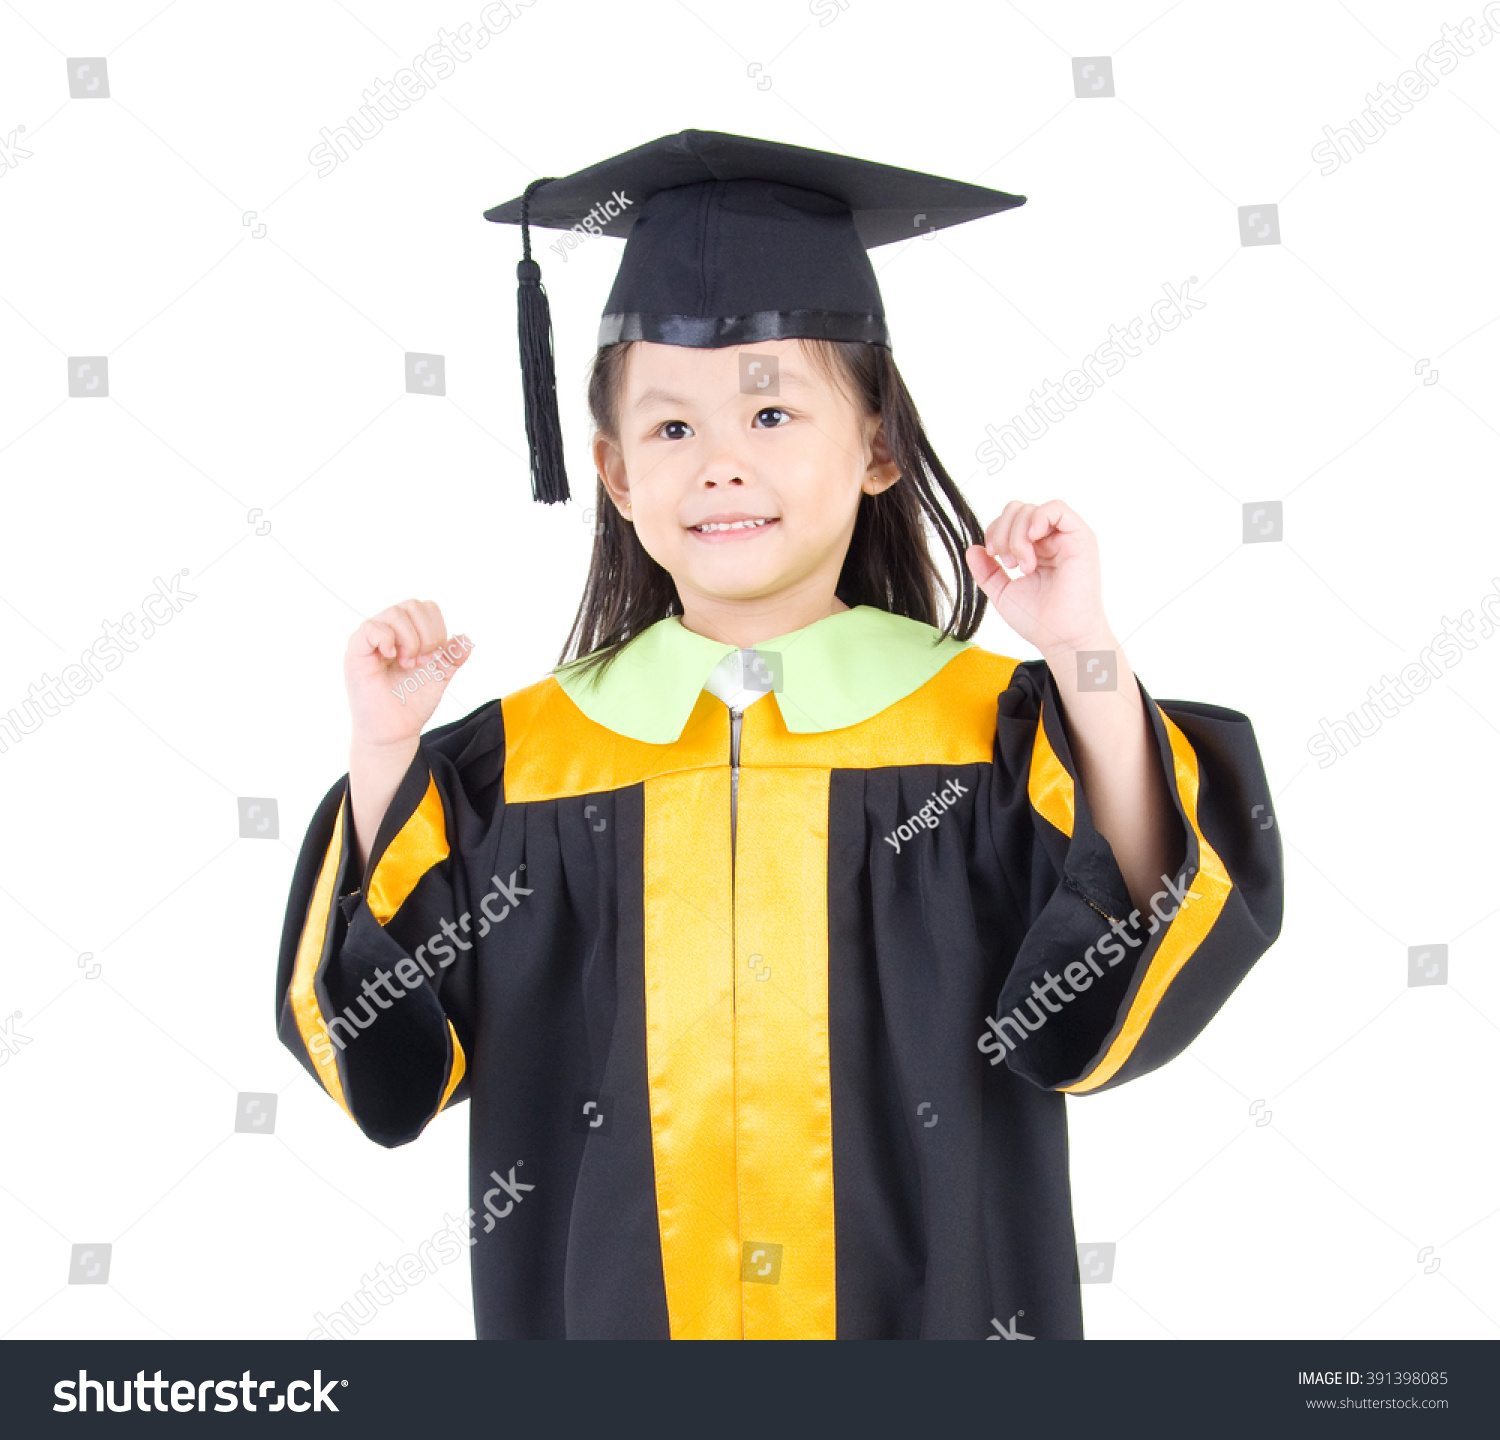 Royalty-free Asian kid in graduation gown #391398085 Stock Photo ...